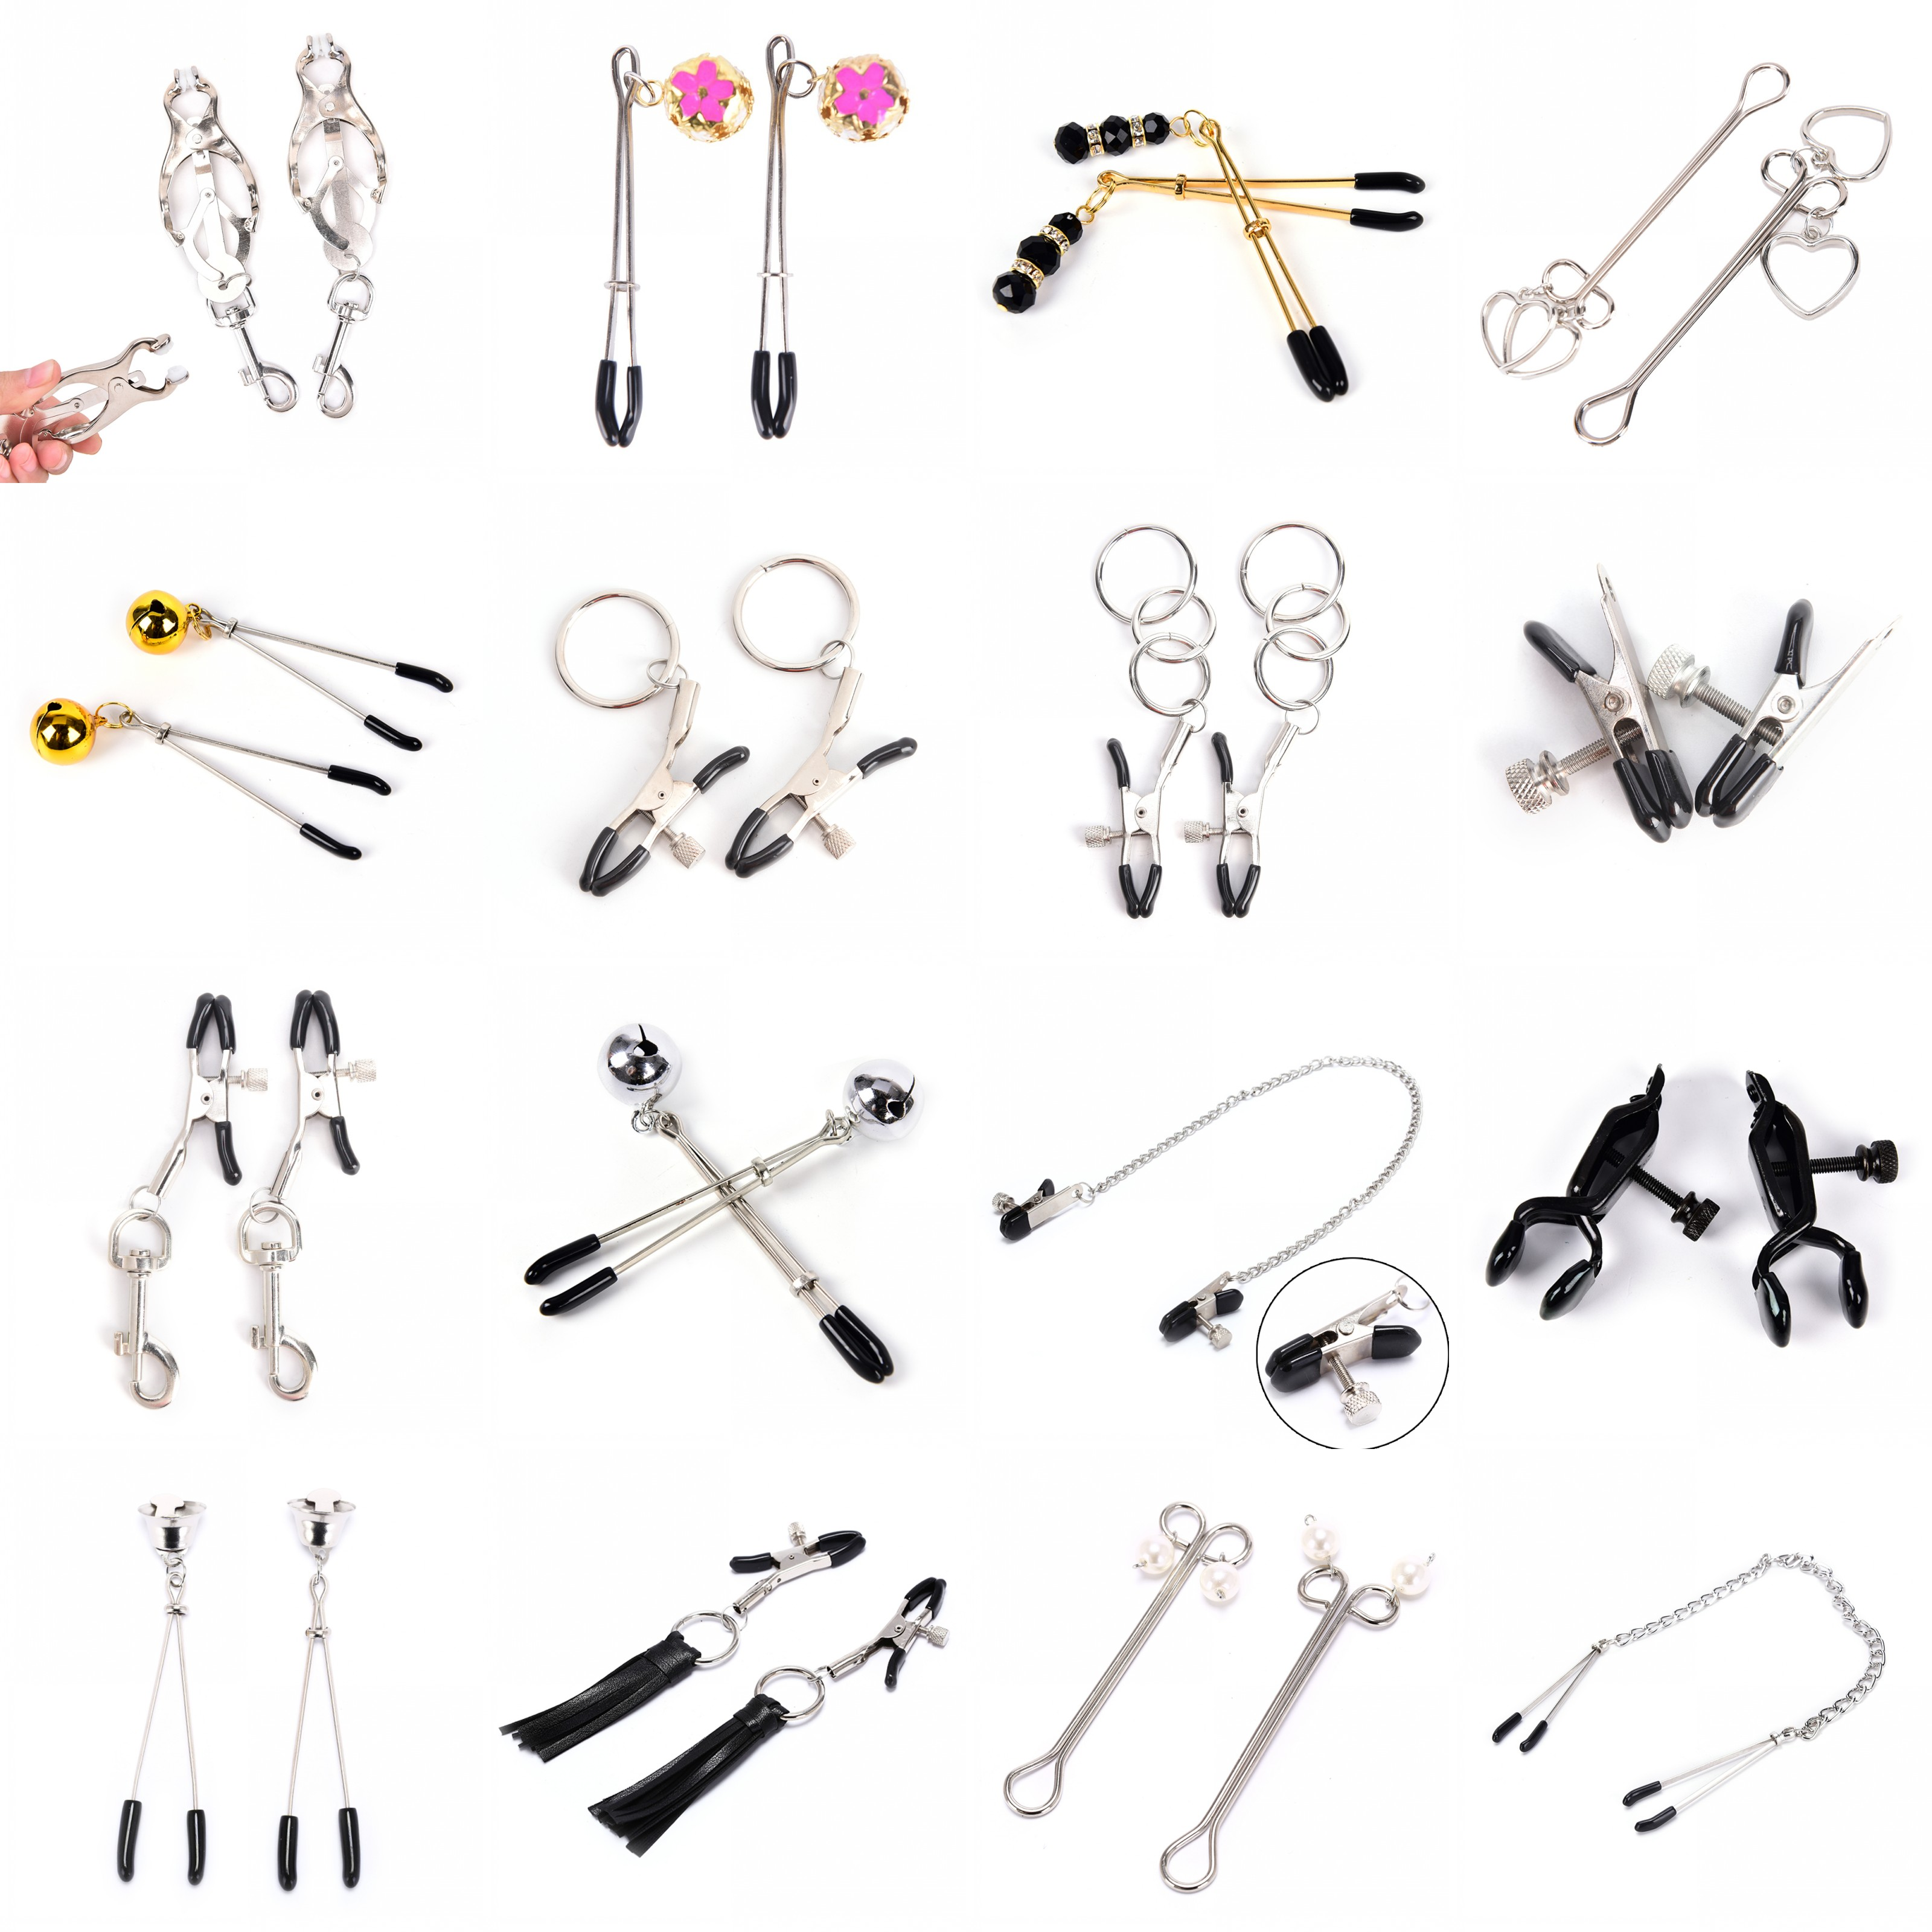 1/2PCS Metal Nipple Clip,Breast Clamp Nipple Clamp,Breast Clip,Female Breast Clip Clitoris Clips Exotic Accessories